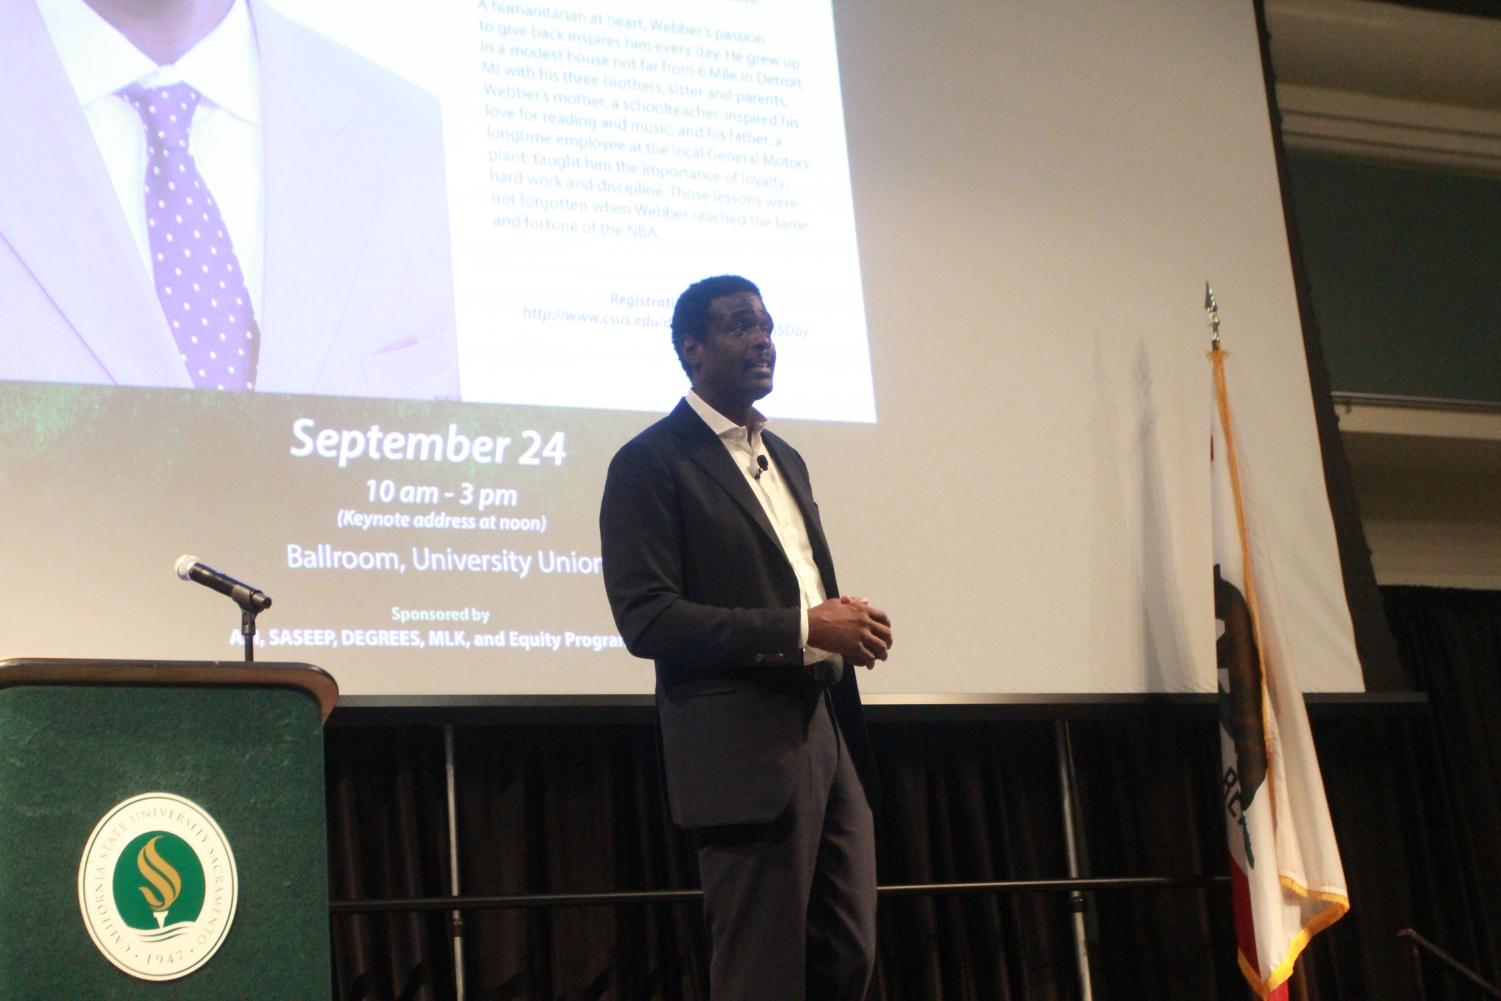 Basketball legend Chris Webber gives his keynote speech on Student Academic Success Day on Sept. 24 in the University Union Ballroom at Sac State.